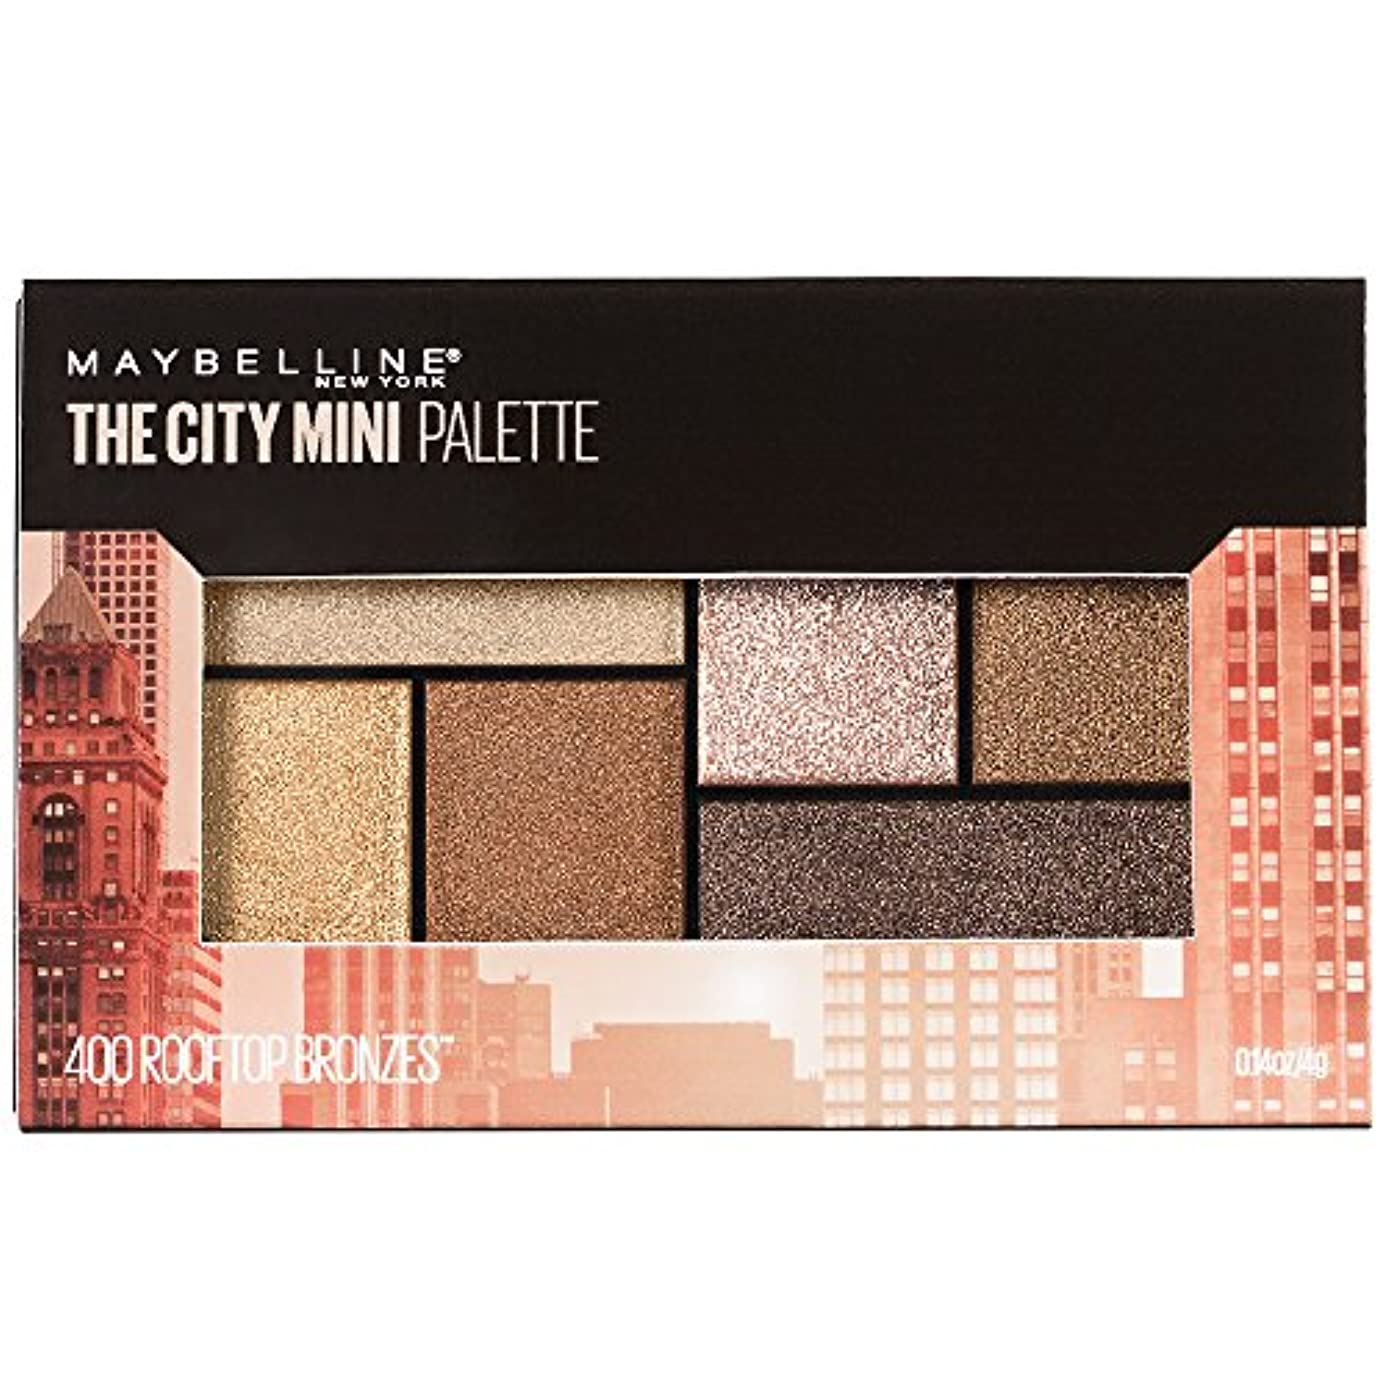 肘創造迷惑MAYBELLINE The City Mini Palette - Rooftop Bronzes (並行輸入品)